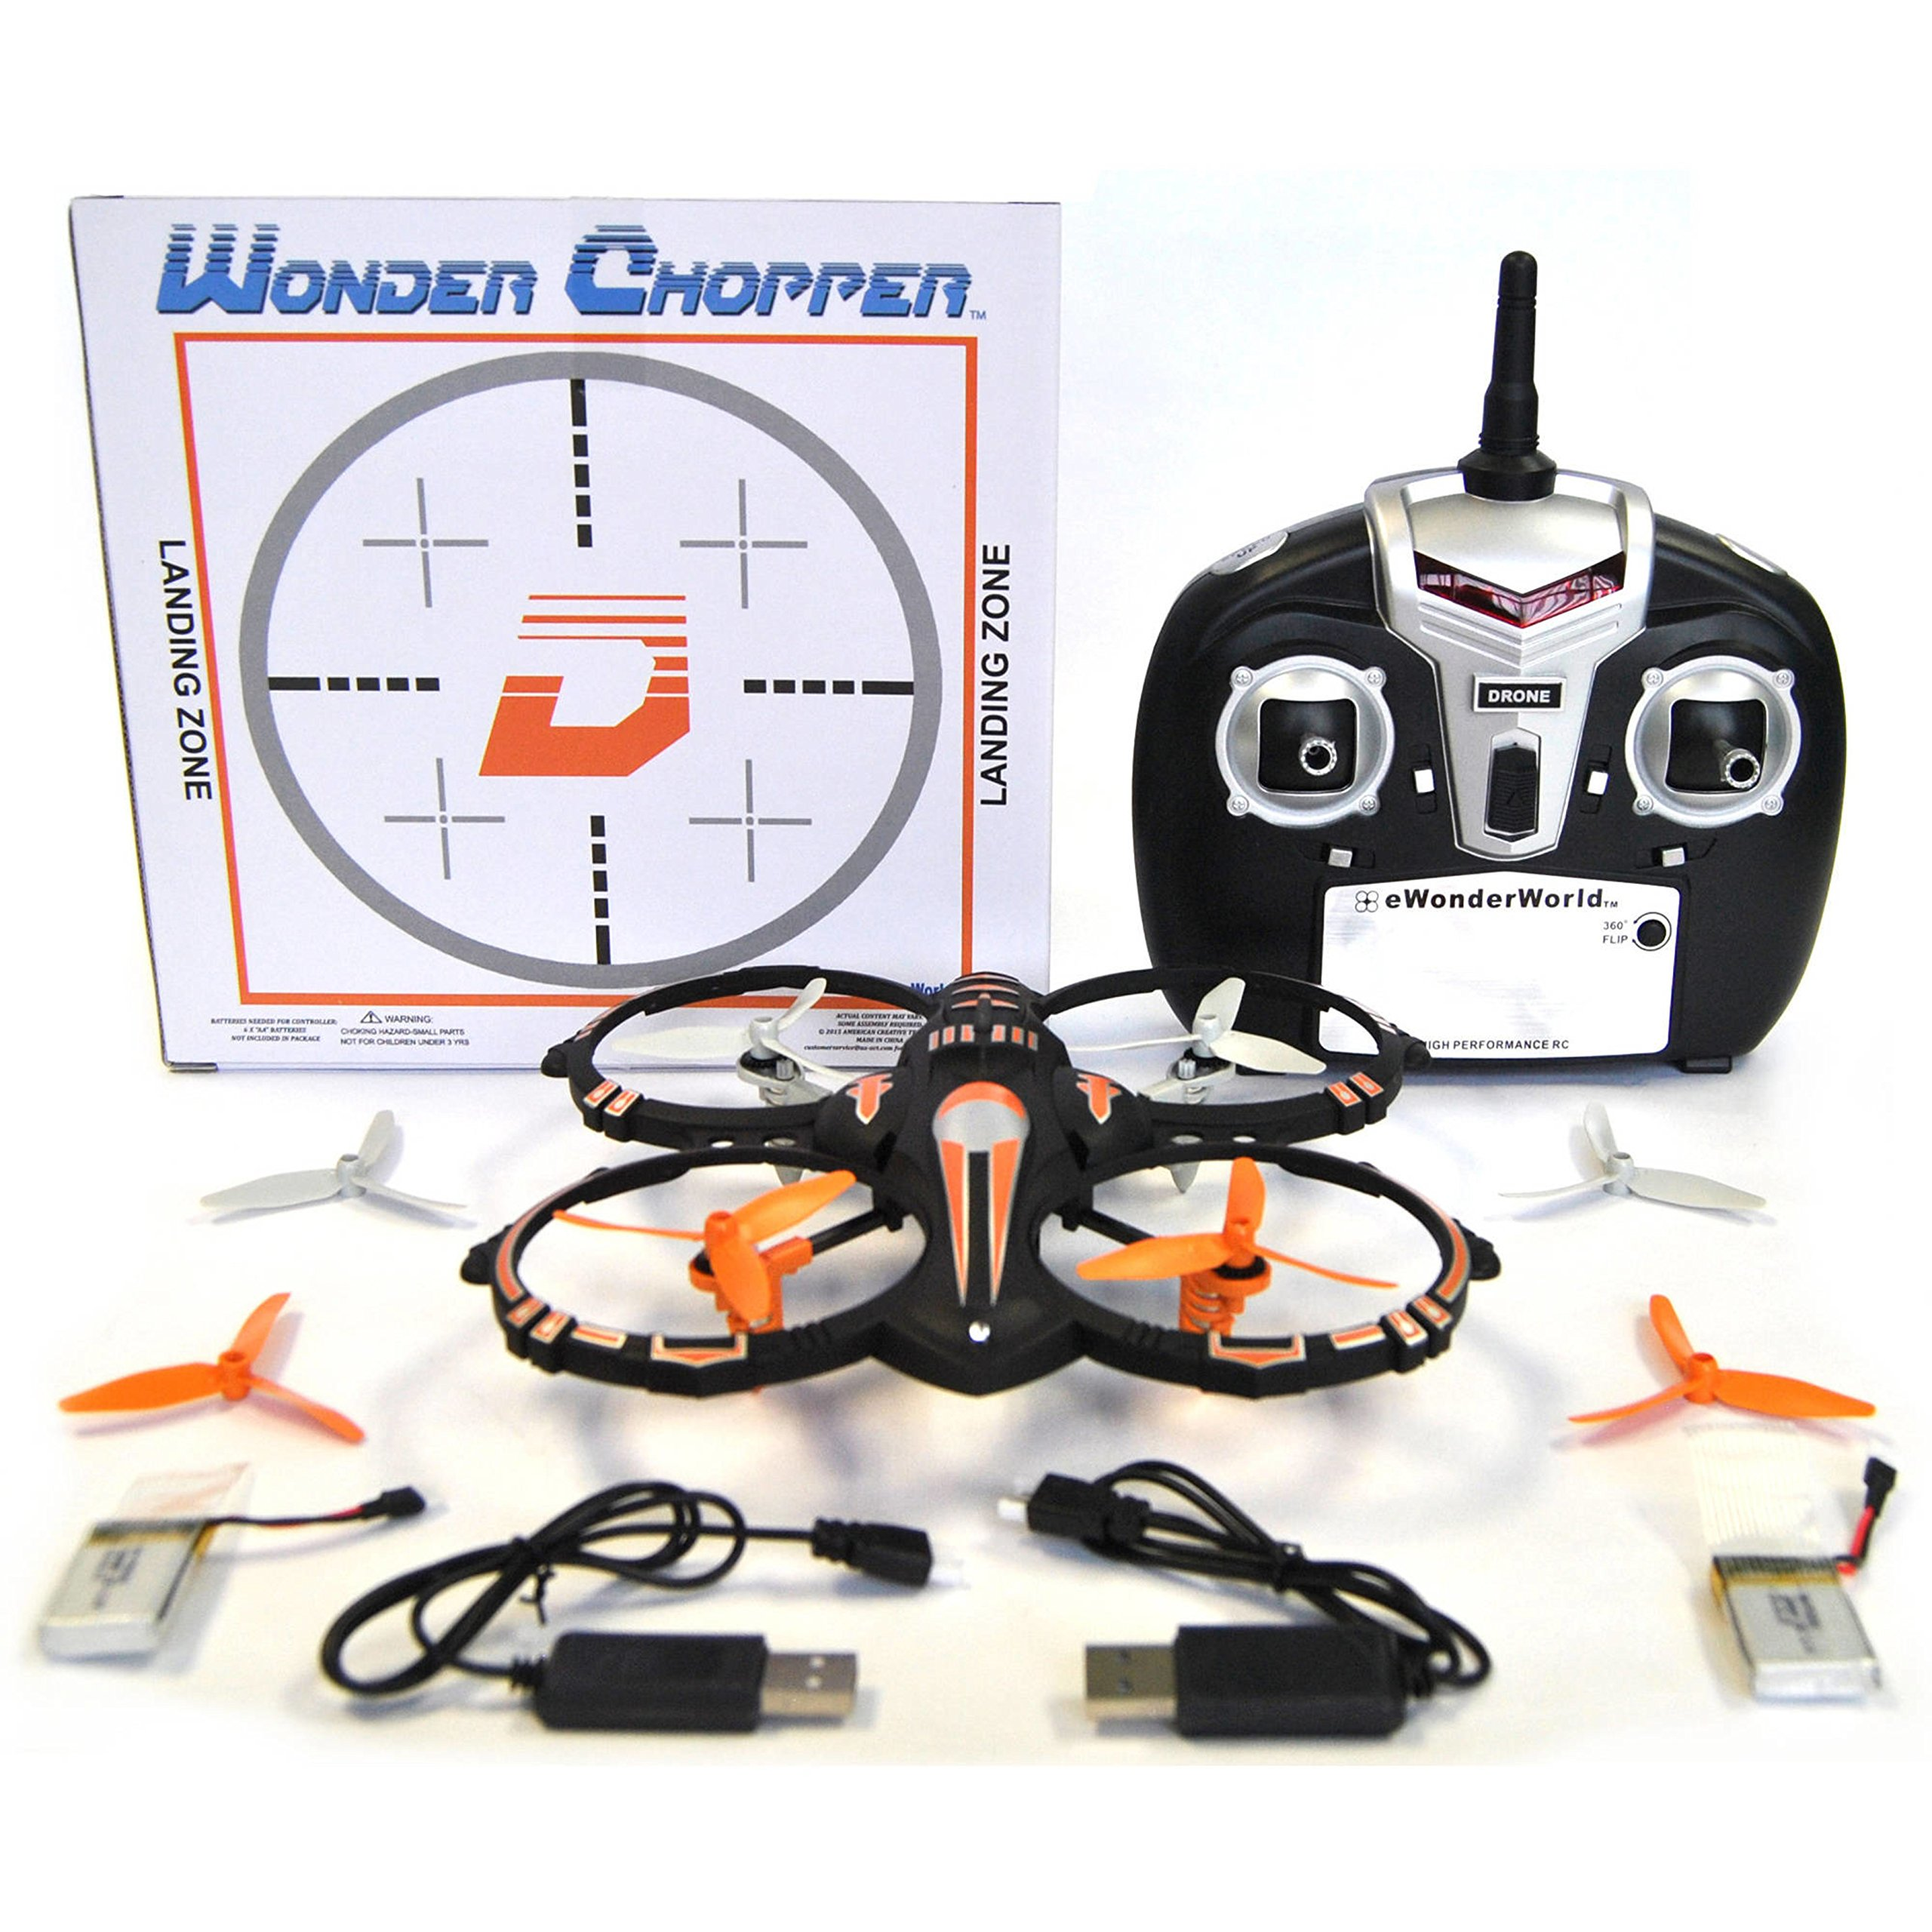 Durable Crash Proof 2.4GHz Stunt Remote Control Drone Quadcopter with 360 Flip by WONDER CHOPPER*